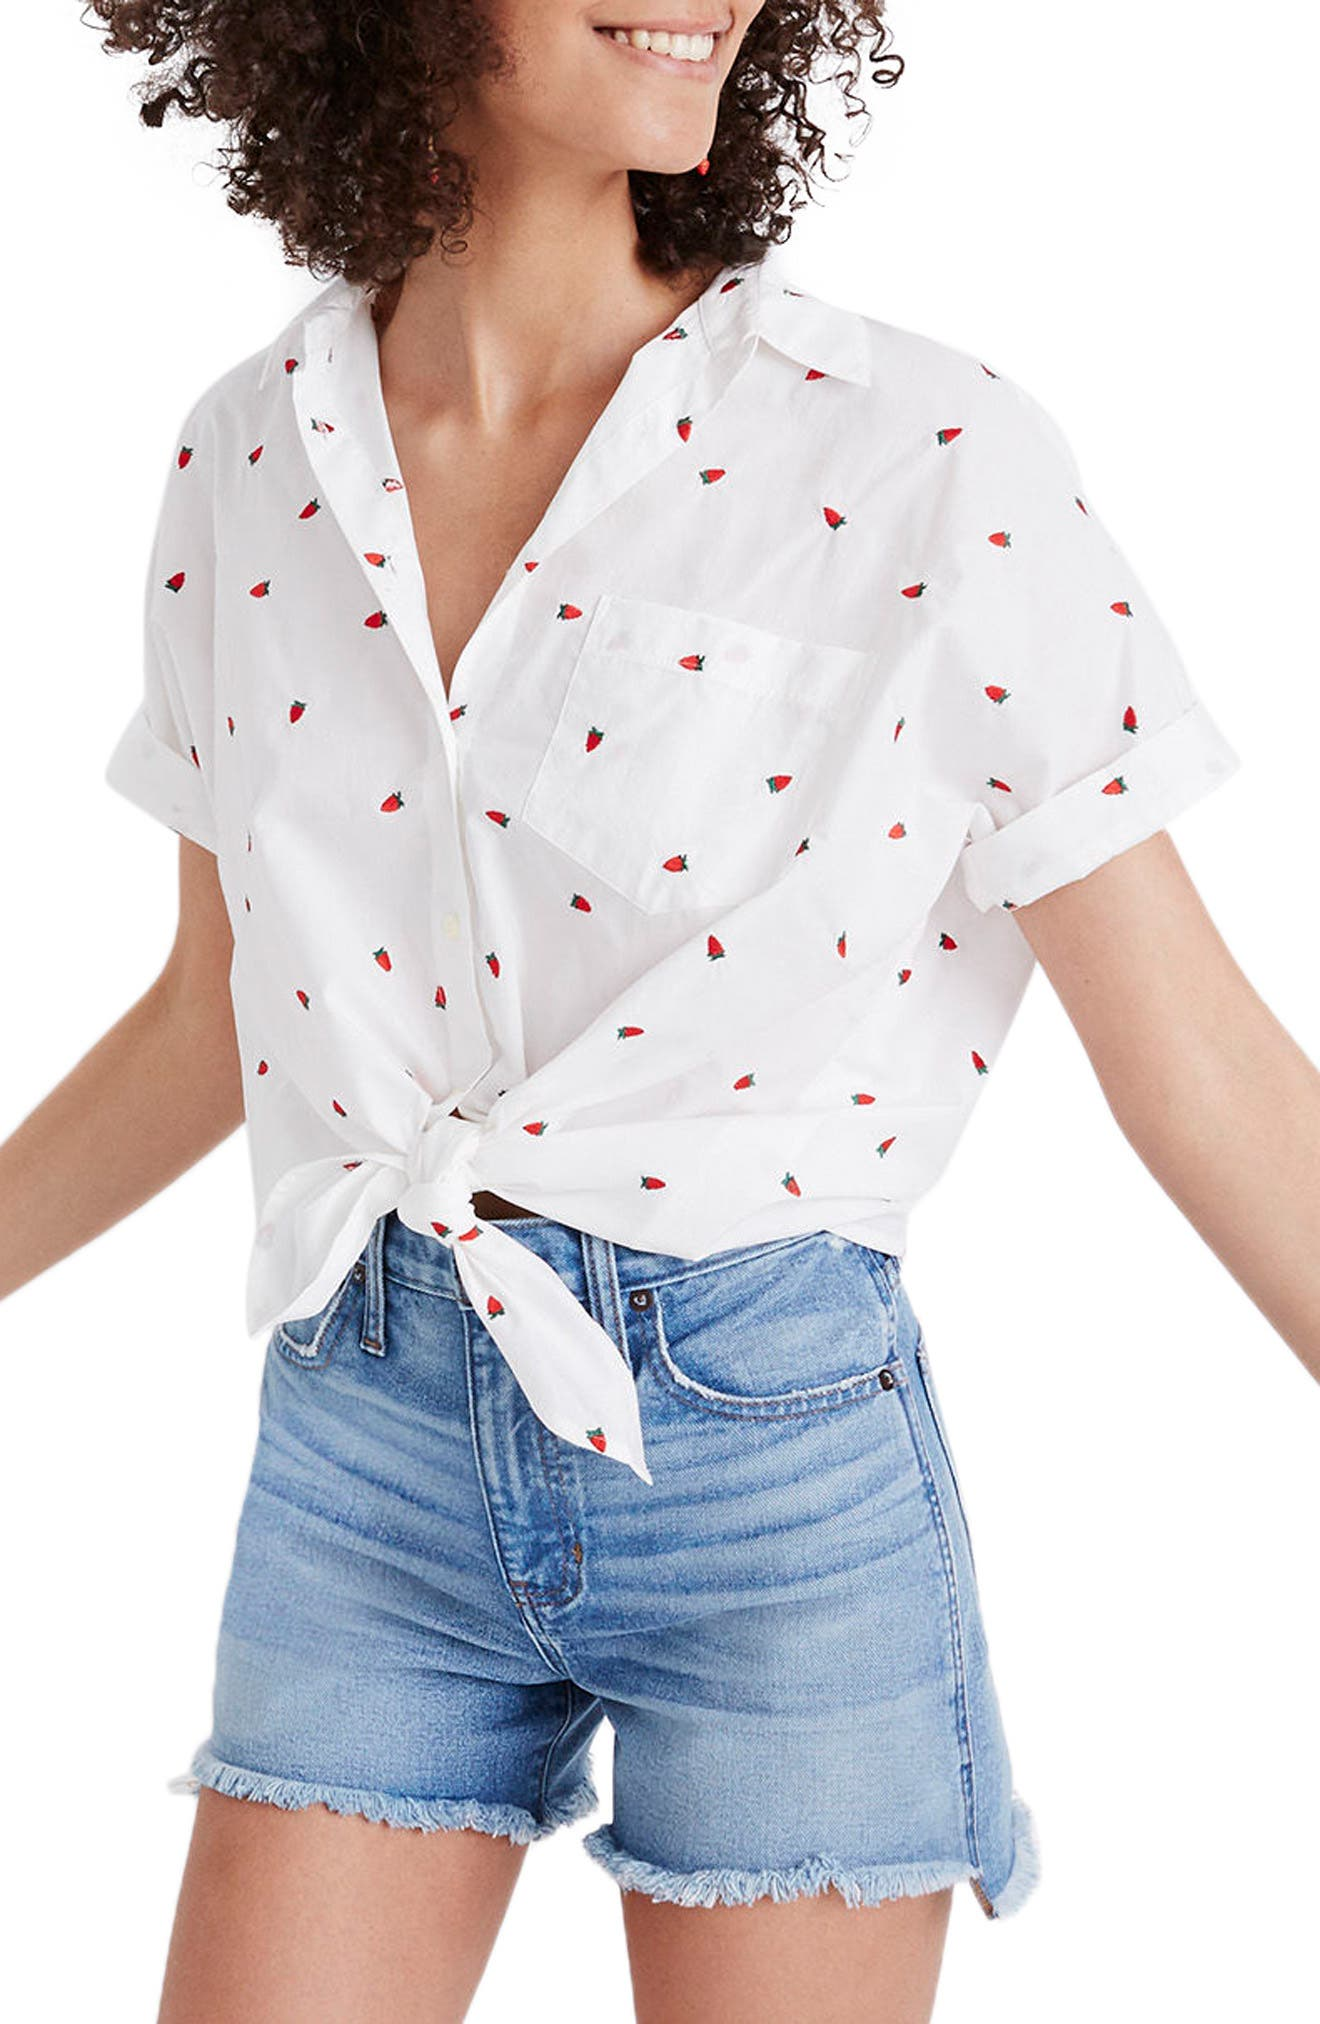 MADEWELL Strawberry Embroidered Tie Front Shirt, Main, color, 100